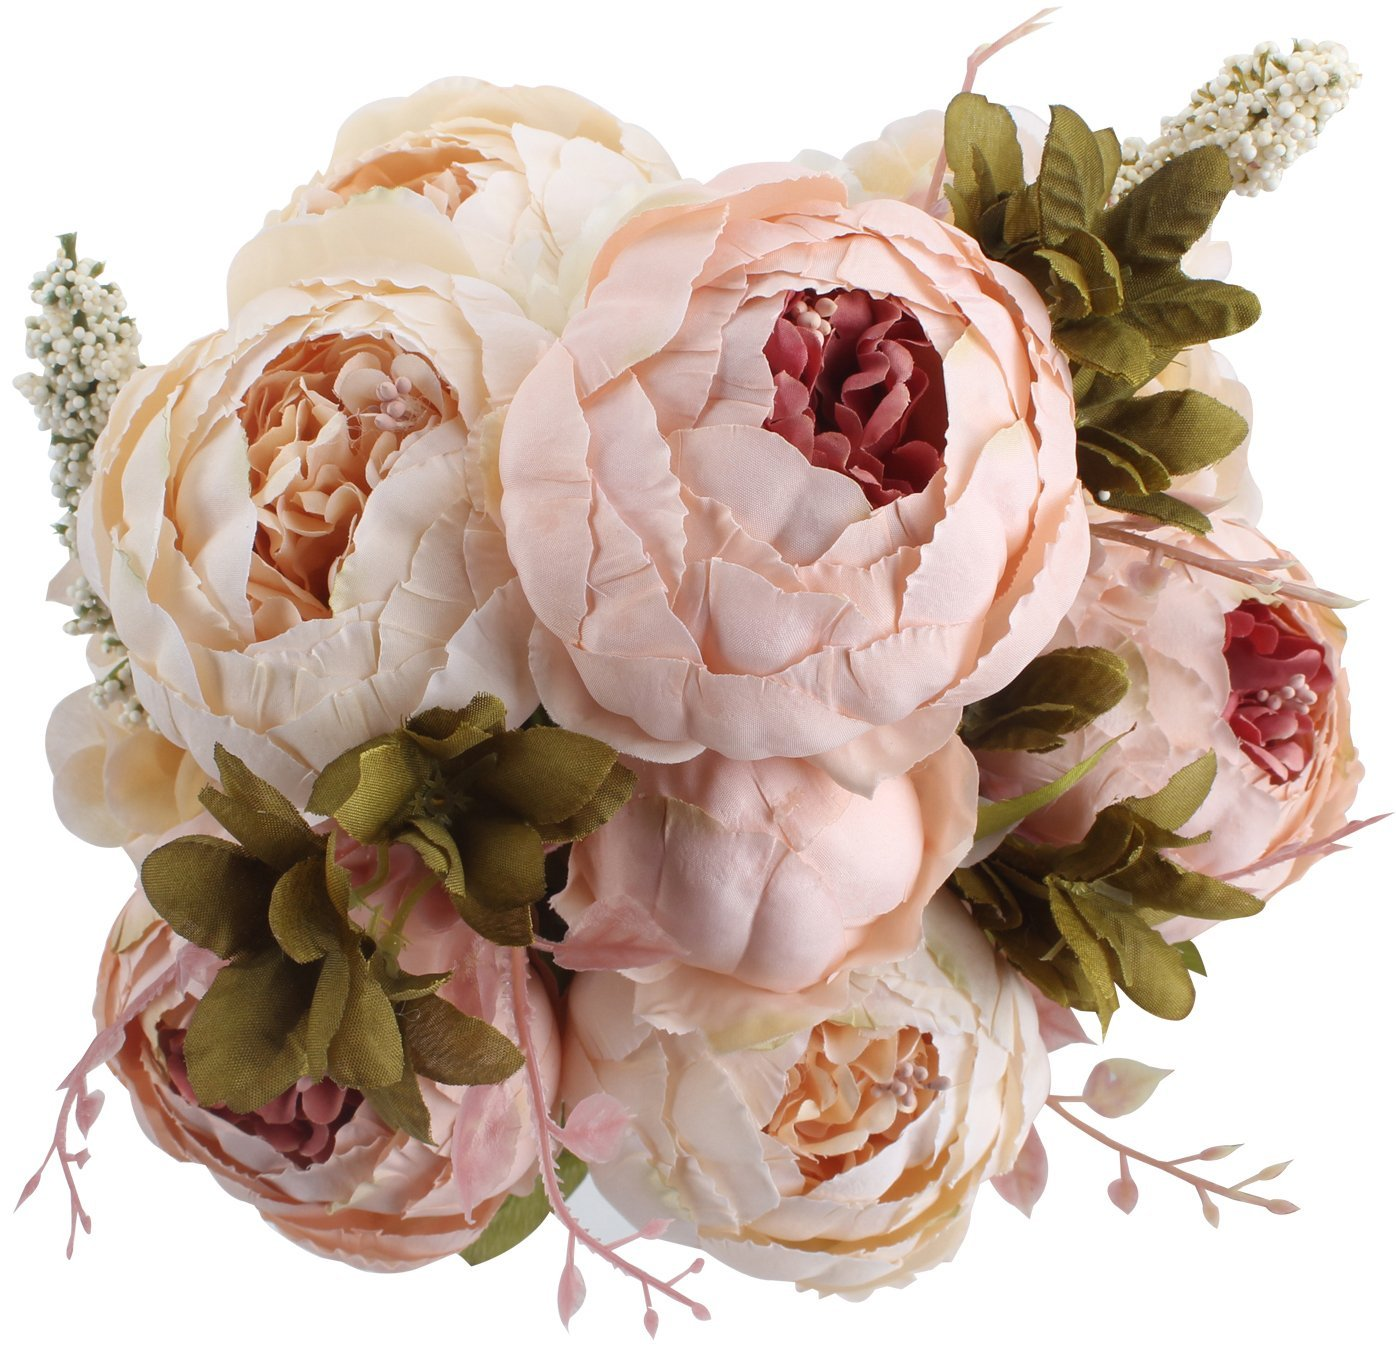 Average Cost Of Wedding Flowers 2014: Fake Flowers Vintage Artificial Peony Silk Flower Wedding